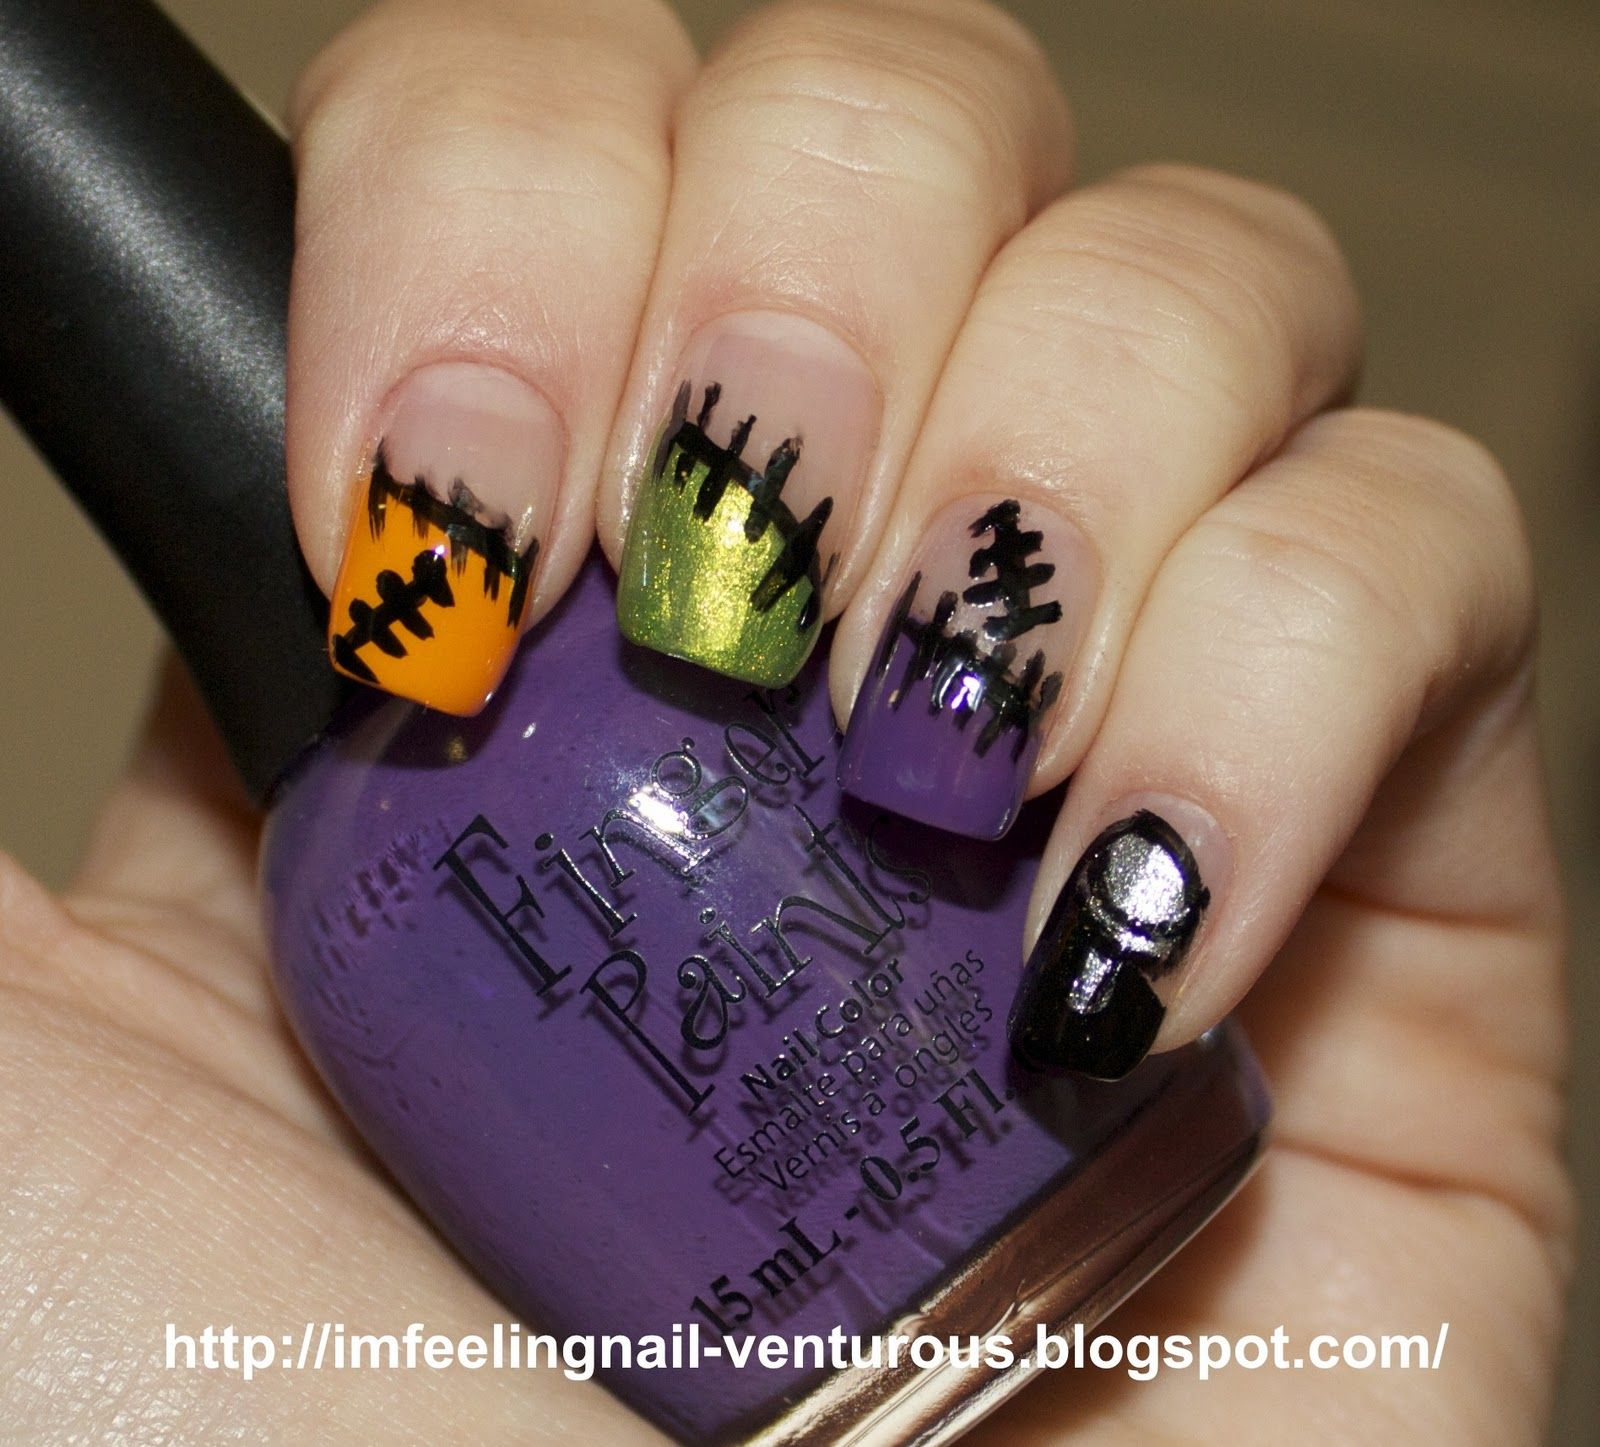 Funky frankenstein french nail design i wish i could see the nail